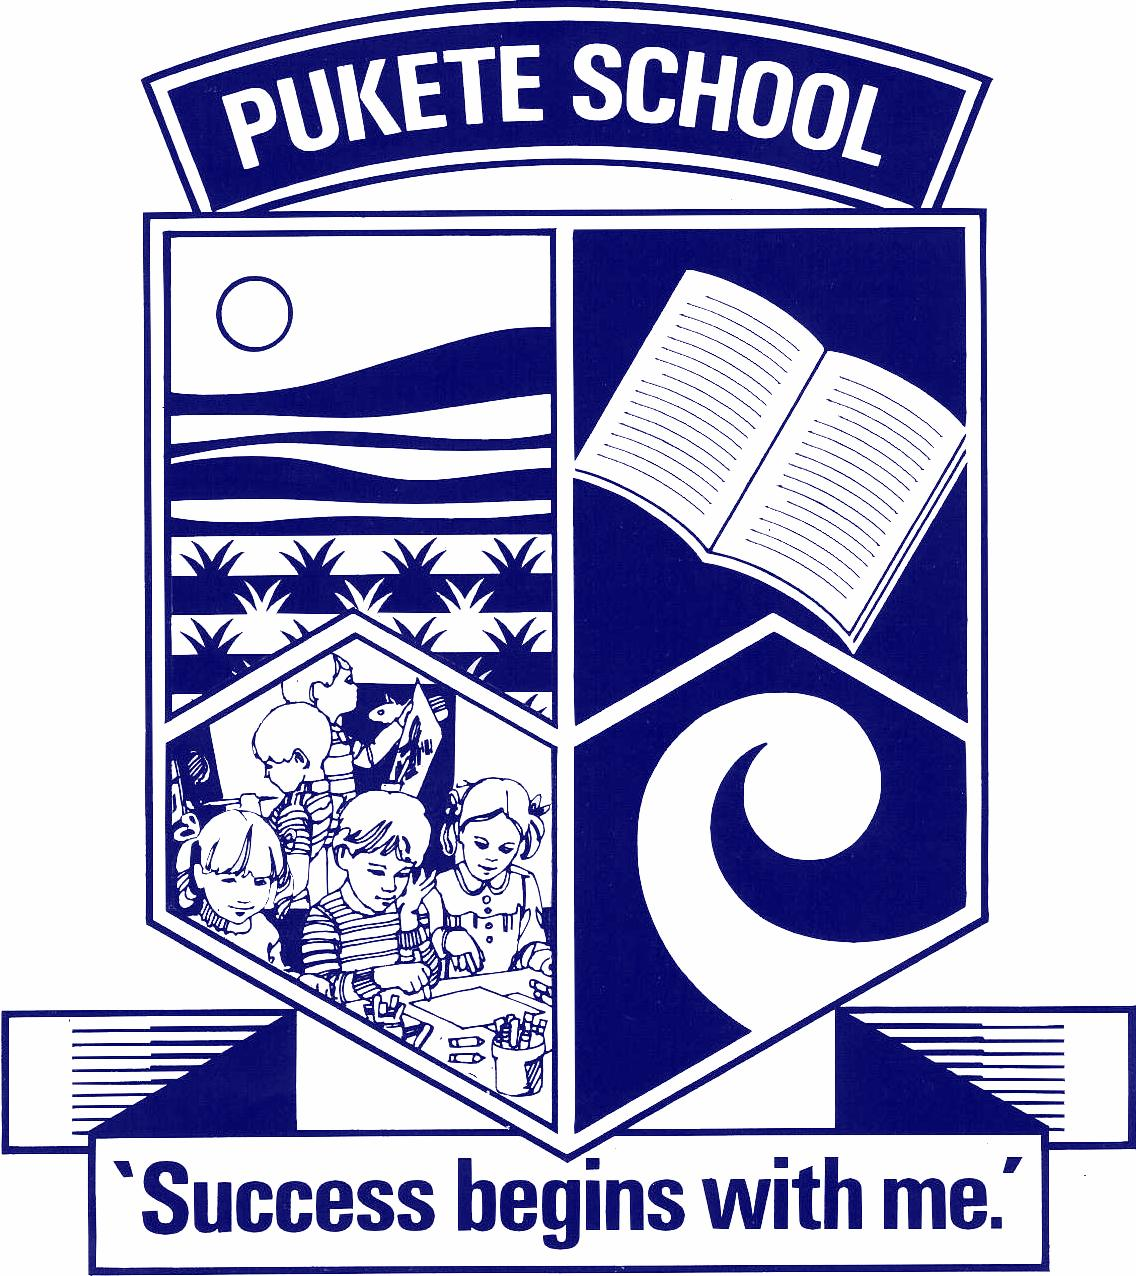 "Our school emblem represents:   Top left-- is the Waikato River and the hill on which the old Pa site is located on Pukete Road.  Top right--the open book represents the sharing of knowledge.    Bottom left--represents our children eager and willing to learn.  Bottom right--the Koru represents our cultural diversity      Our Vison   Our vision for Pukete School is to create a community of confident critical thinkers who are open-minded, motivated, and socially responsible.  Pukete learners will be able to contribute to and succeed in our changing world.        Our Mission    "" Success Begins With Me""   We believe responsibility for successful learning is shared between family/whanau and teacher, and as a child grows and develops they will become more responsible for their own learning.  We believe that all children can be successful and we want them to believe in themselves.  We have a can do attitude to enable and empower every child to learn, create and succeed."